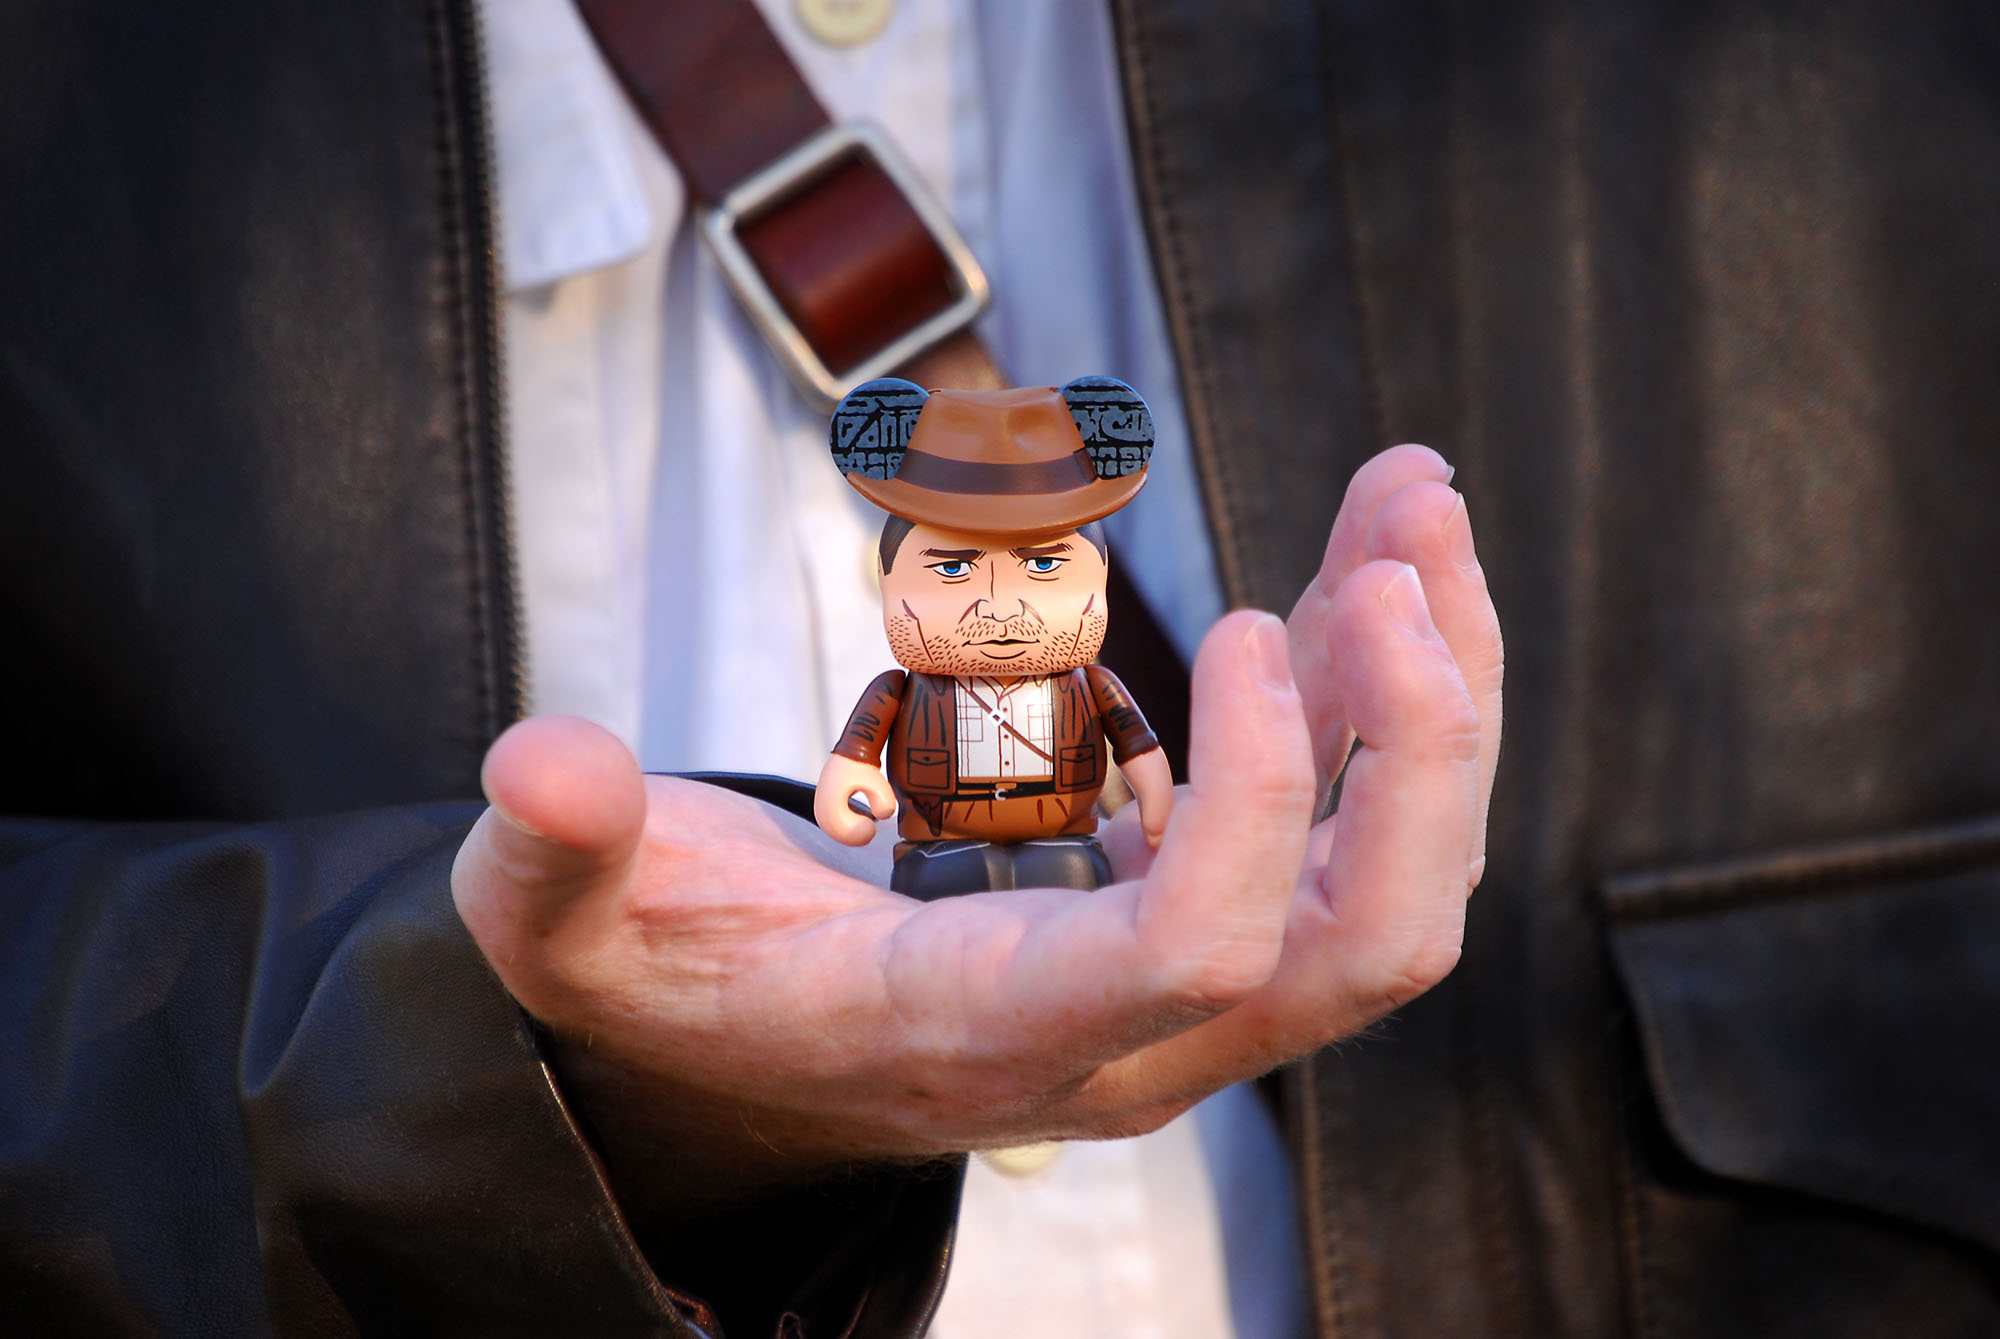 """Raiders of the Lost Ark"" Vinylmation - Indiana Jones Hand"